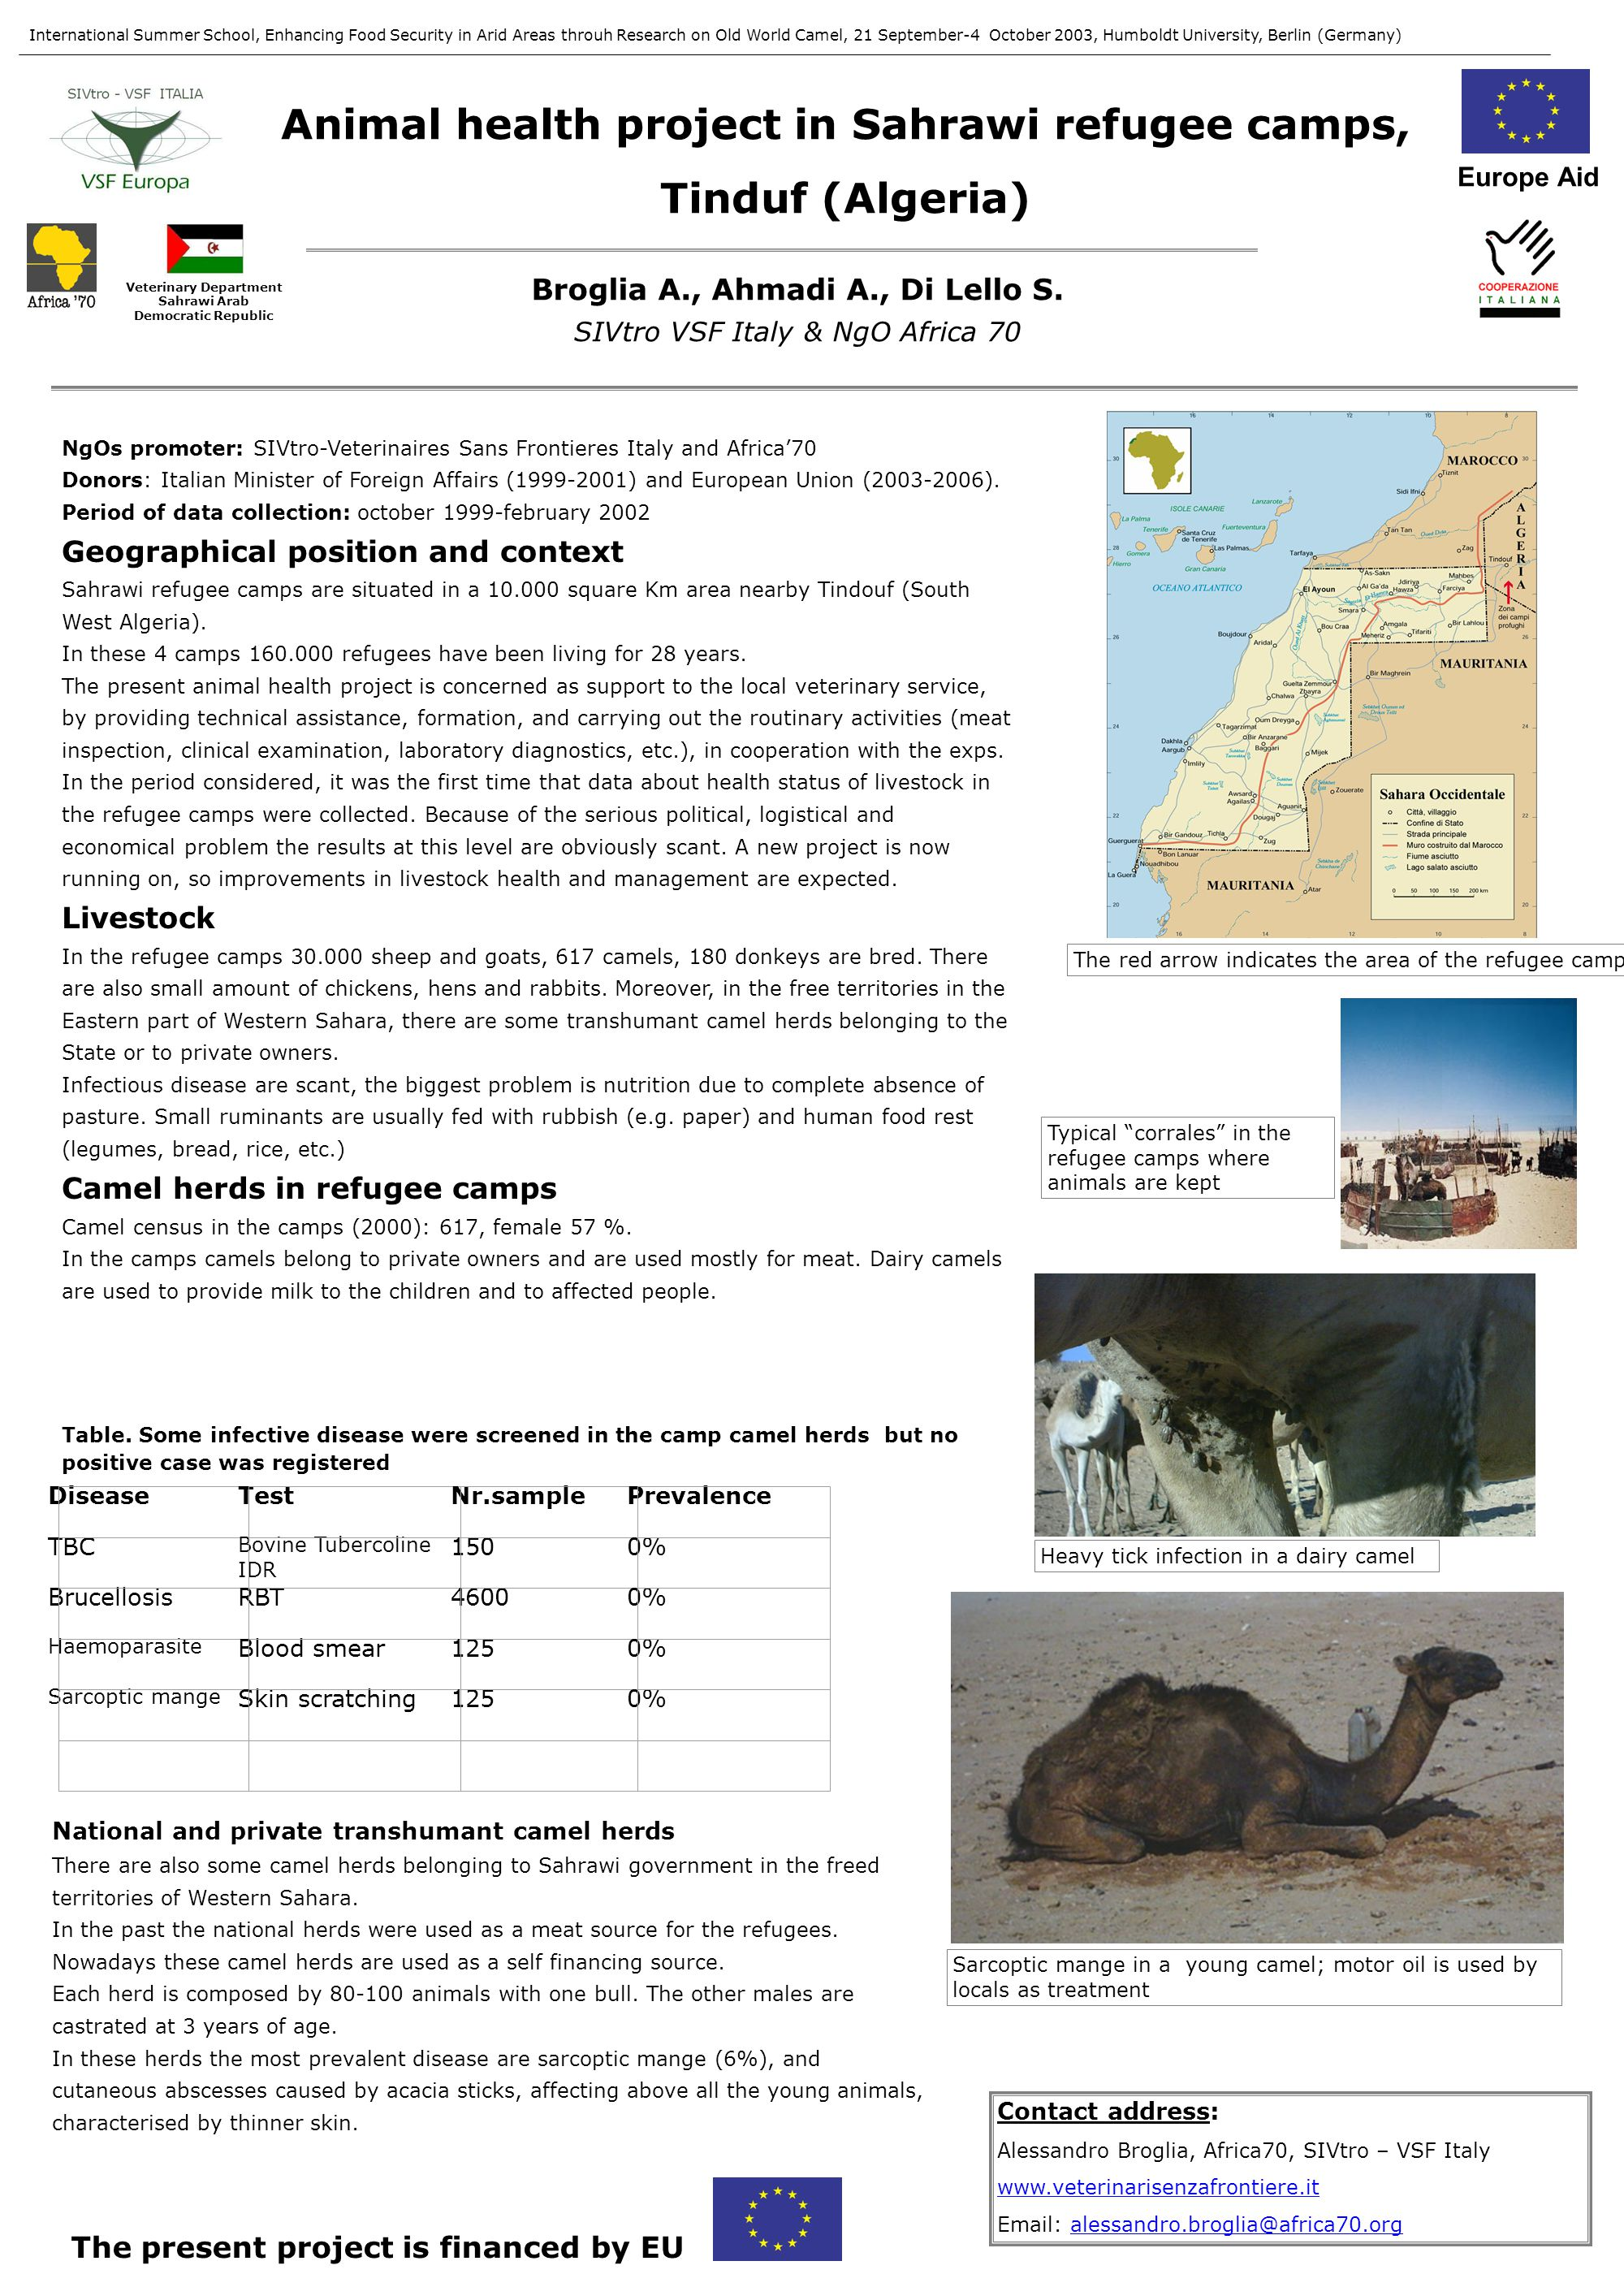 Animal health project in Sahrawi refugee camps, Tinduf (Algeria) NgOs promoter: SIVtro-Veterinaires Sans Frontieres Italy and Africa'70 Donors: Italian Minister of Foreign Affairs (1999-2001) and European Union (2003-2006).